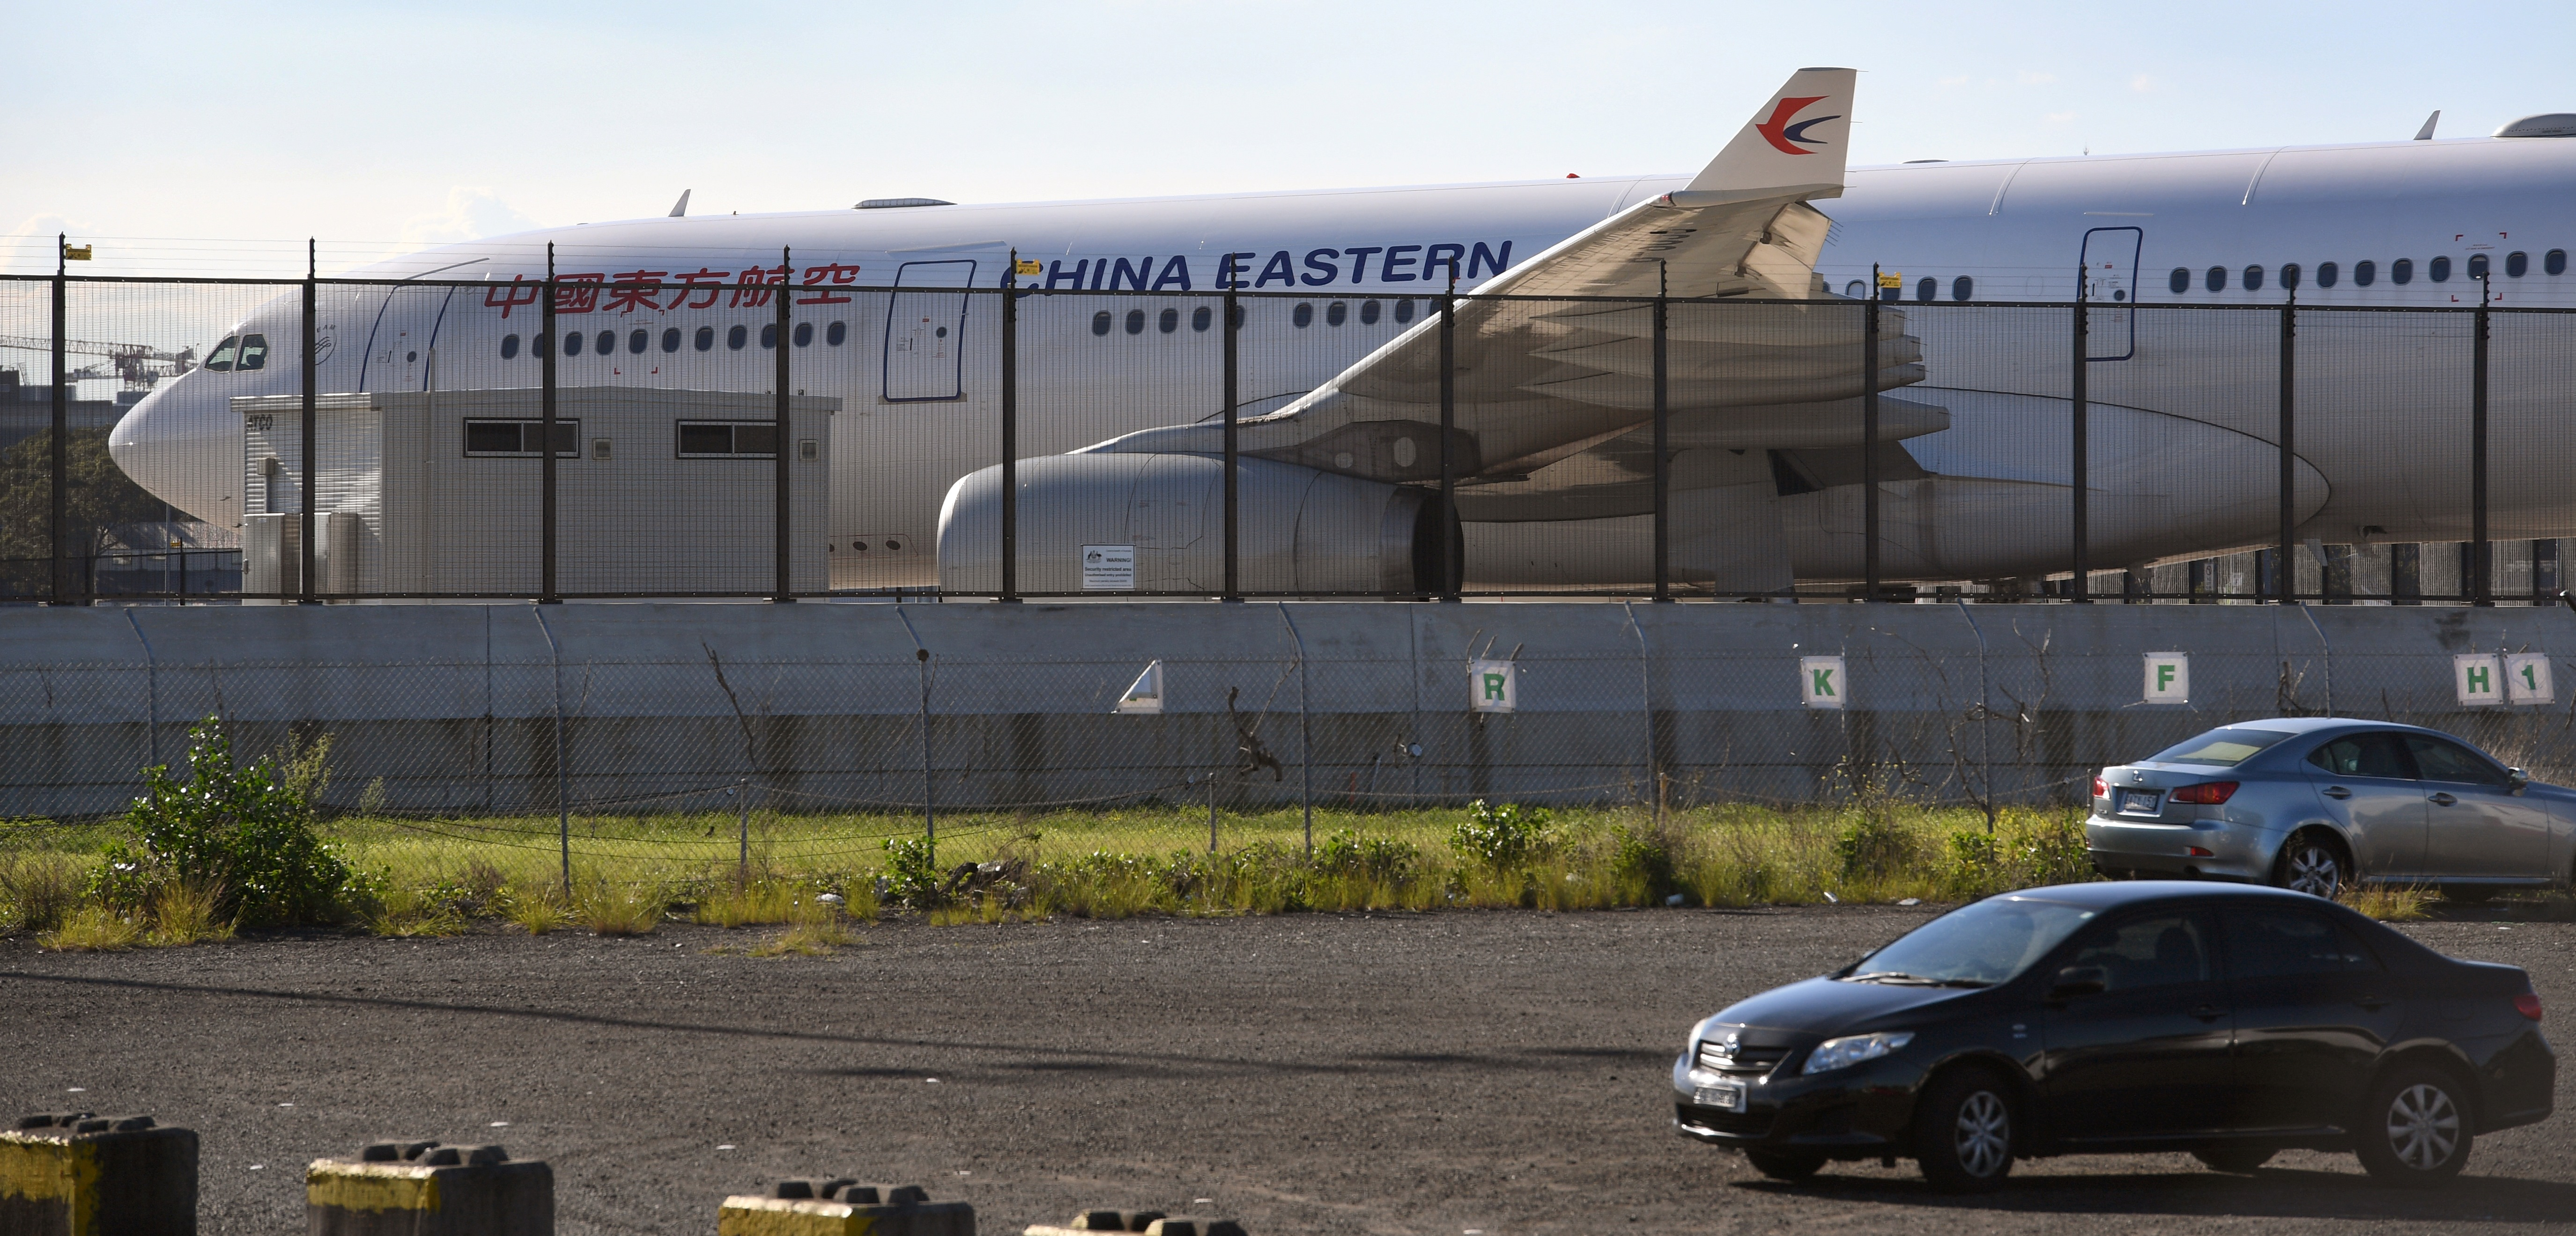 A China Eastern Airbus A330 passenger aircraft, which suffered a serious fault to its starboard engine following take-off, sits on the tarmac at Sydney Airport on June 12, 2017.